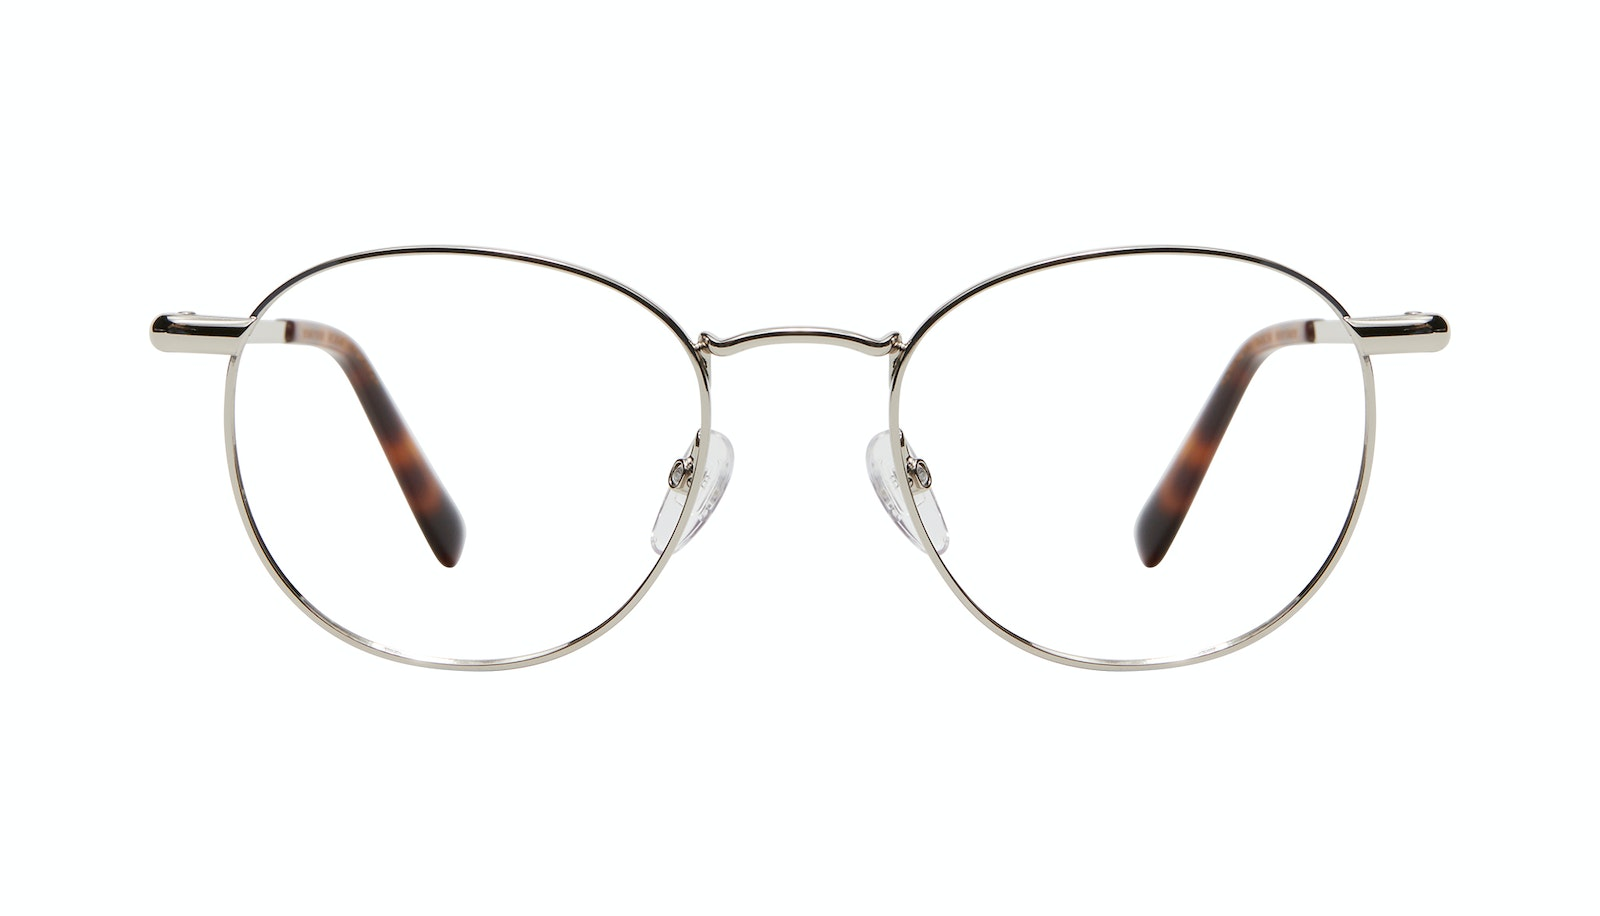 Affordable Fashion Glasses Round Eyeglasses Men Women Divine L Silver